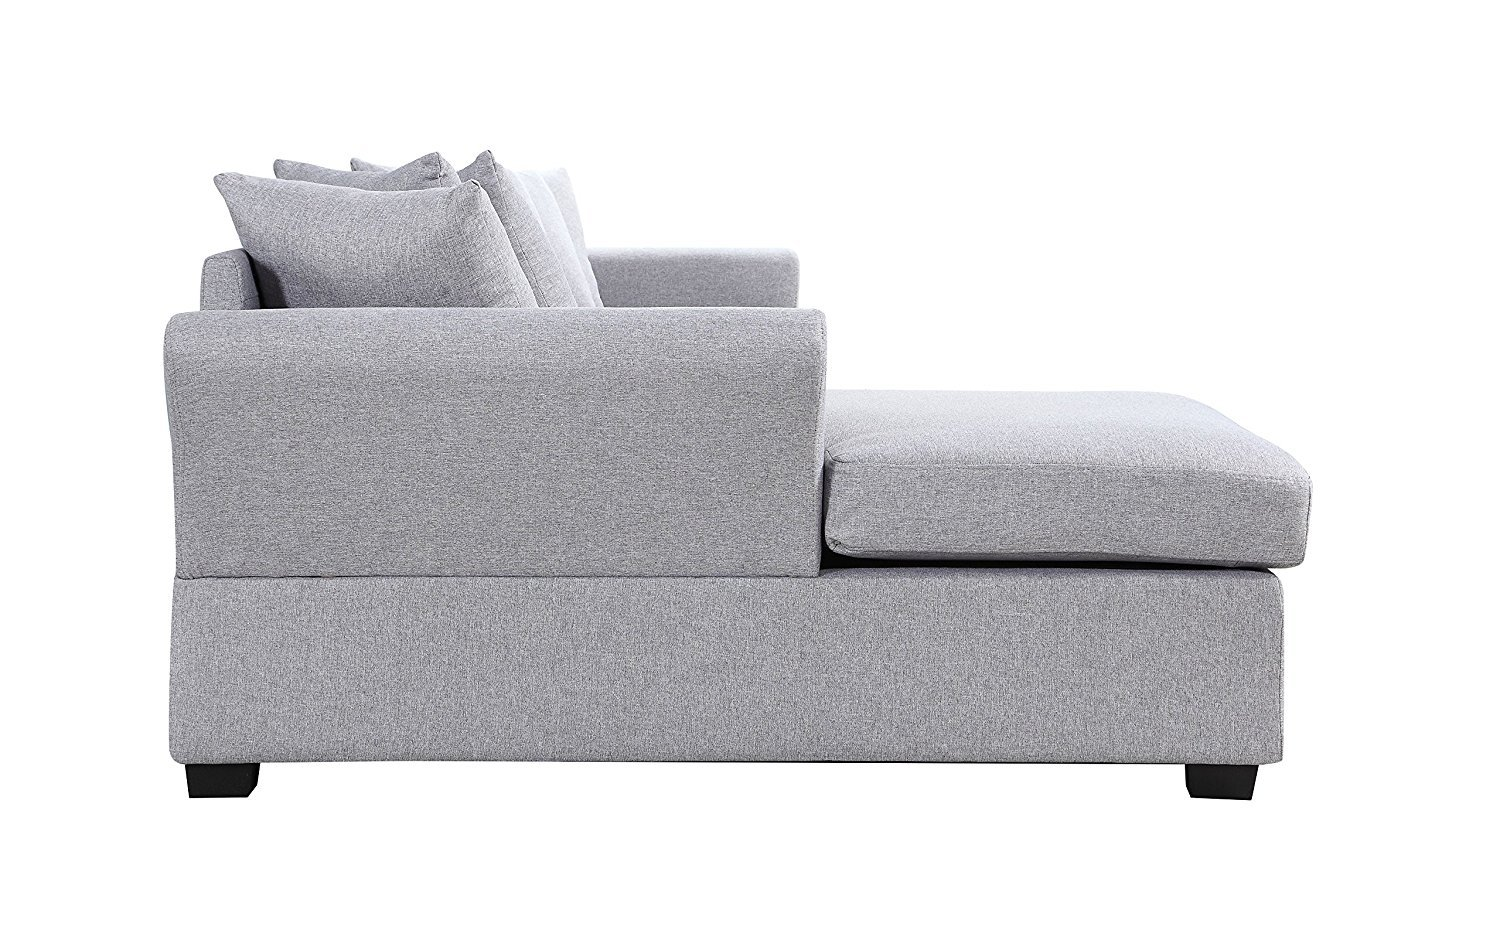 grey fabric l shaped sofa triple recliner modern large sectional shape couch extra